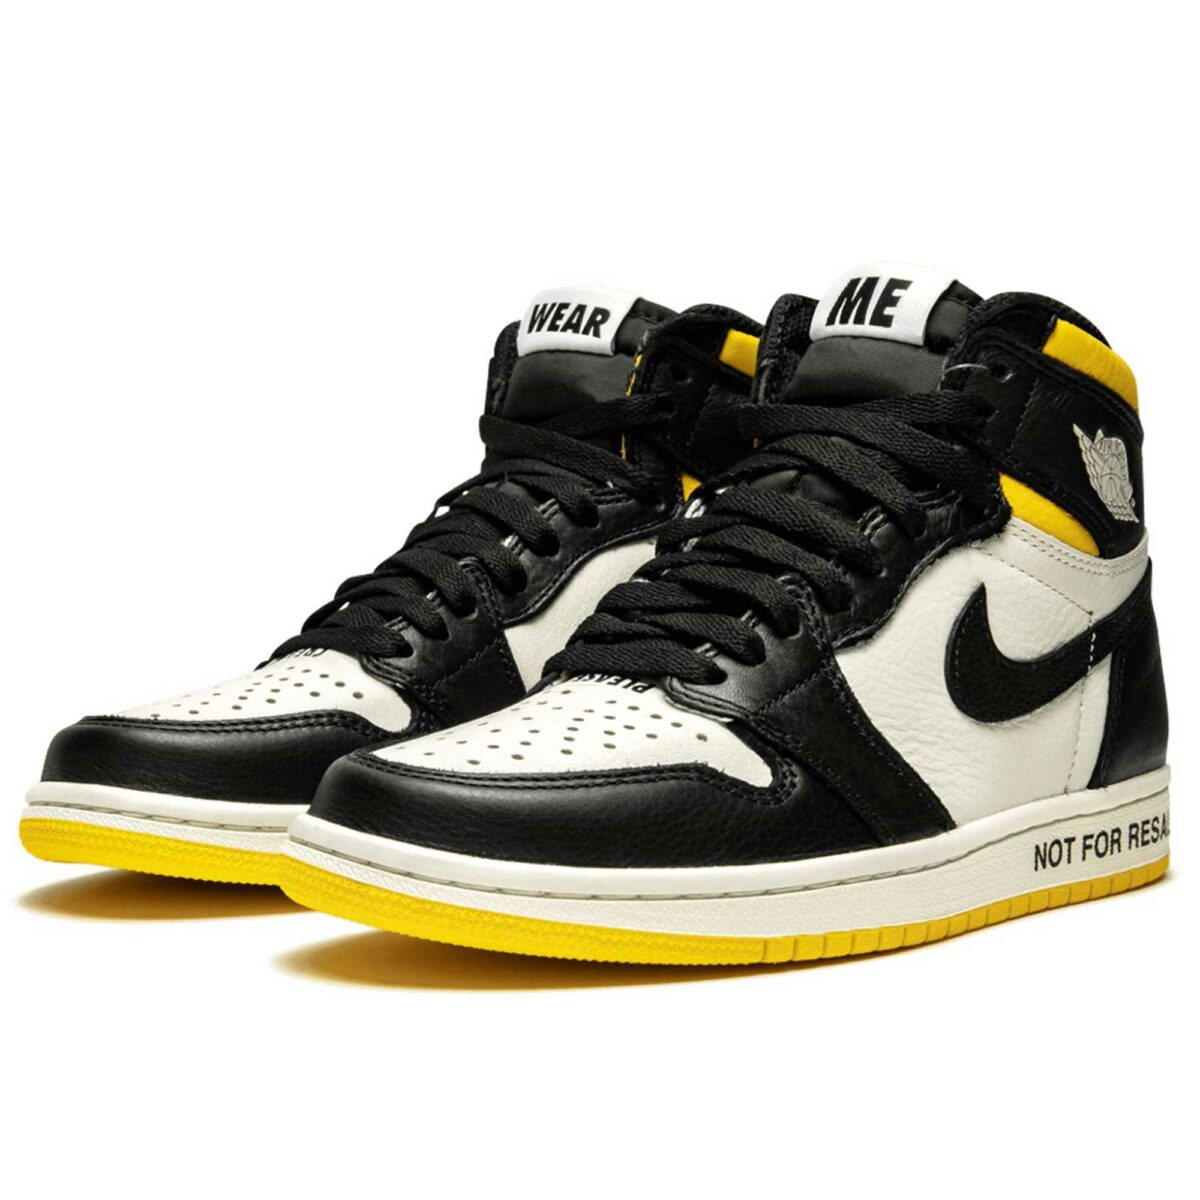 nike air Jordan 1 retro high not for resale 861428_107 купить